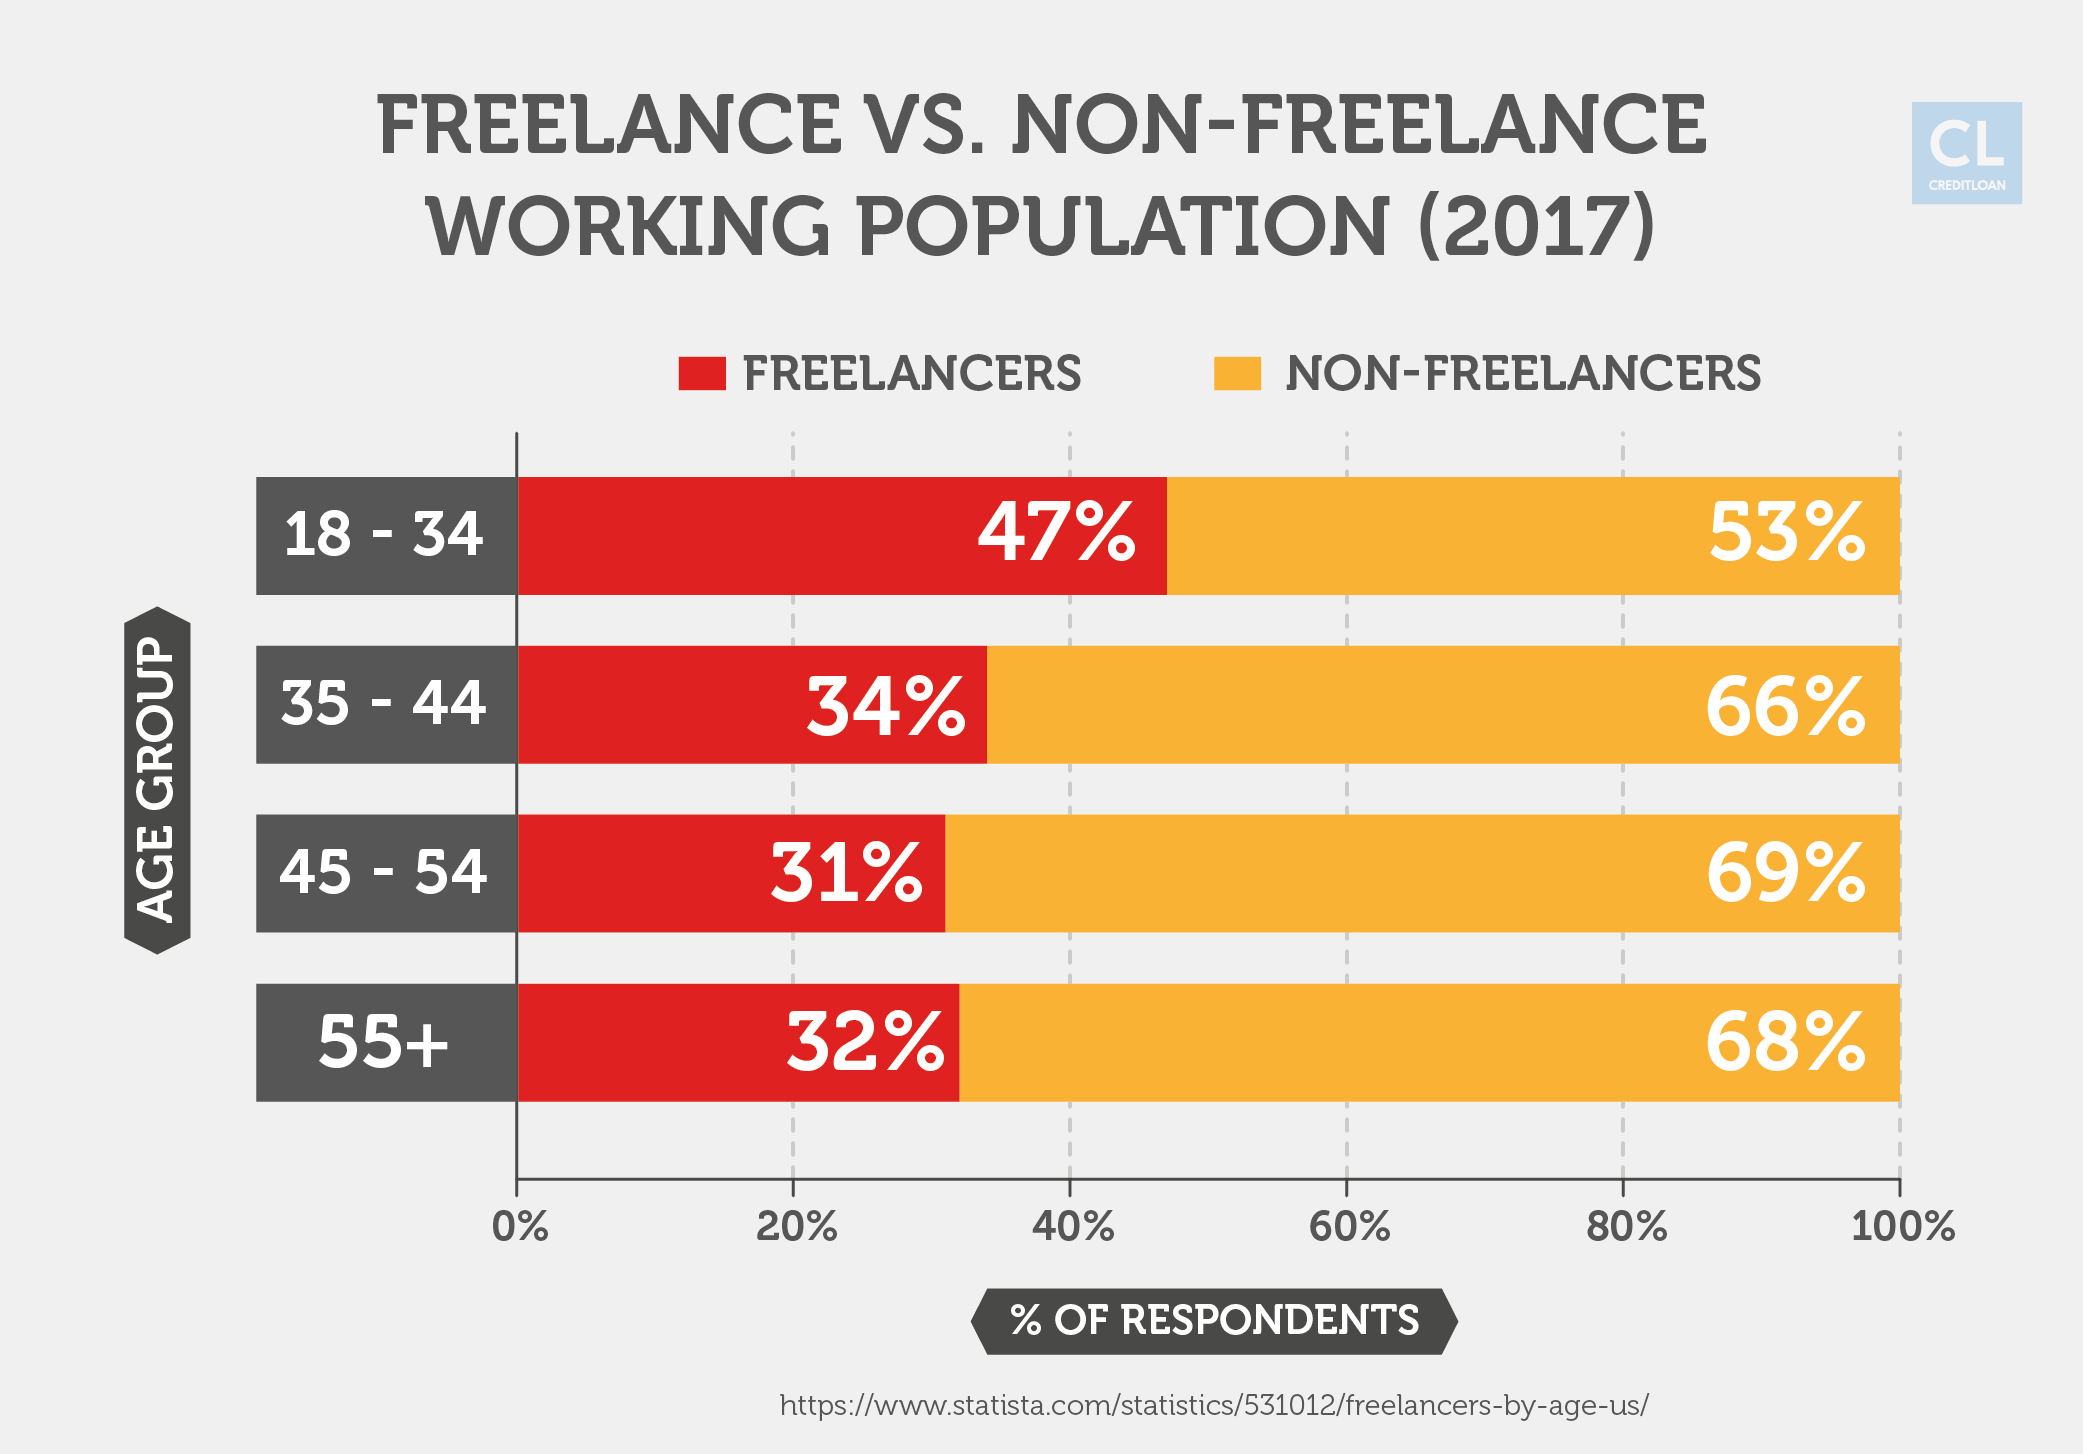 Age Group of Freelance vs. Non-Freelance Working Population Statistics